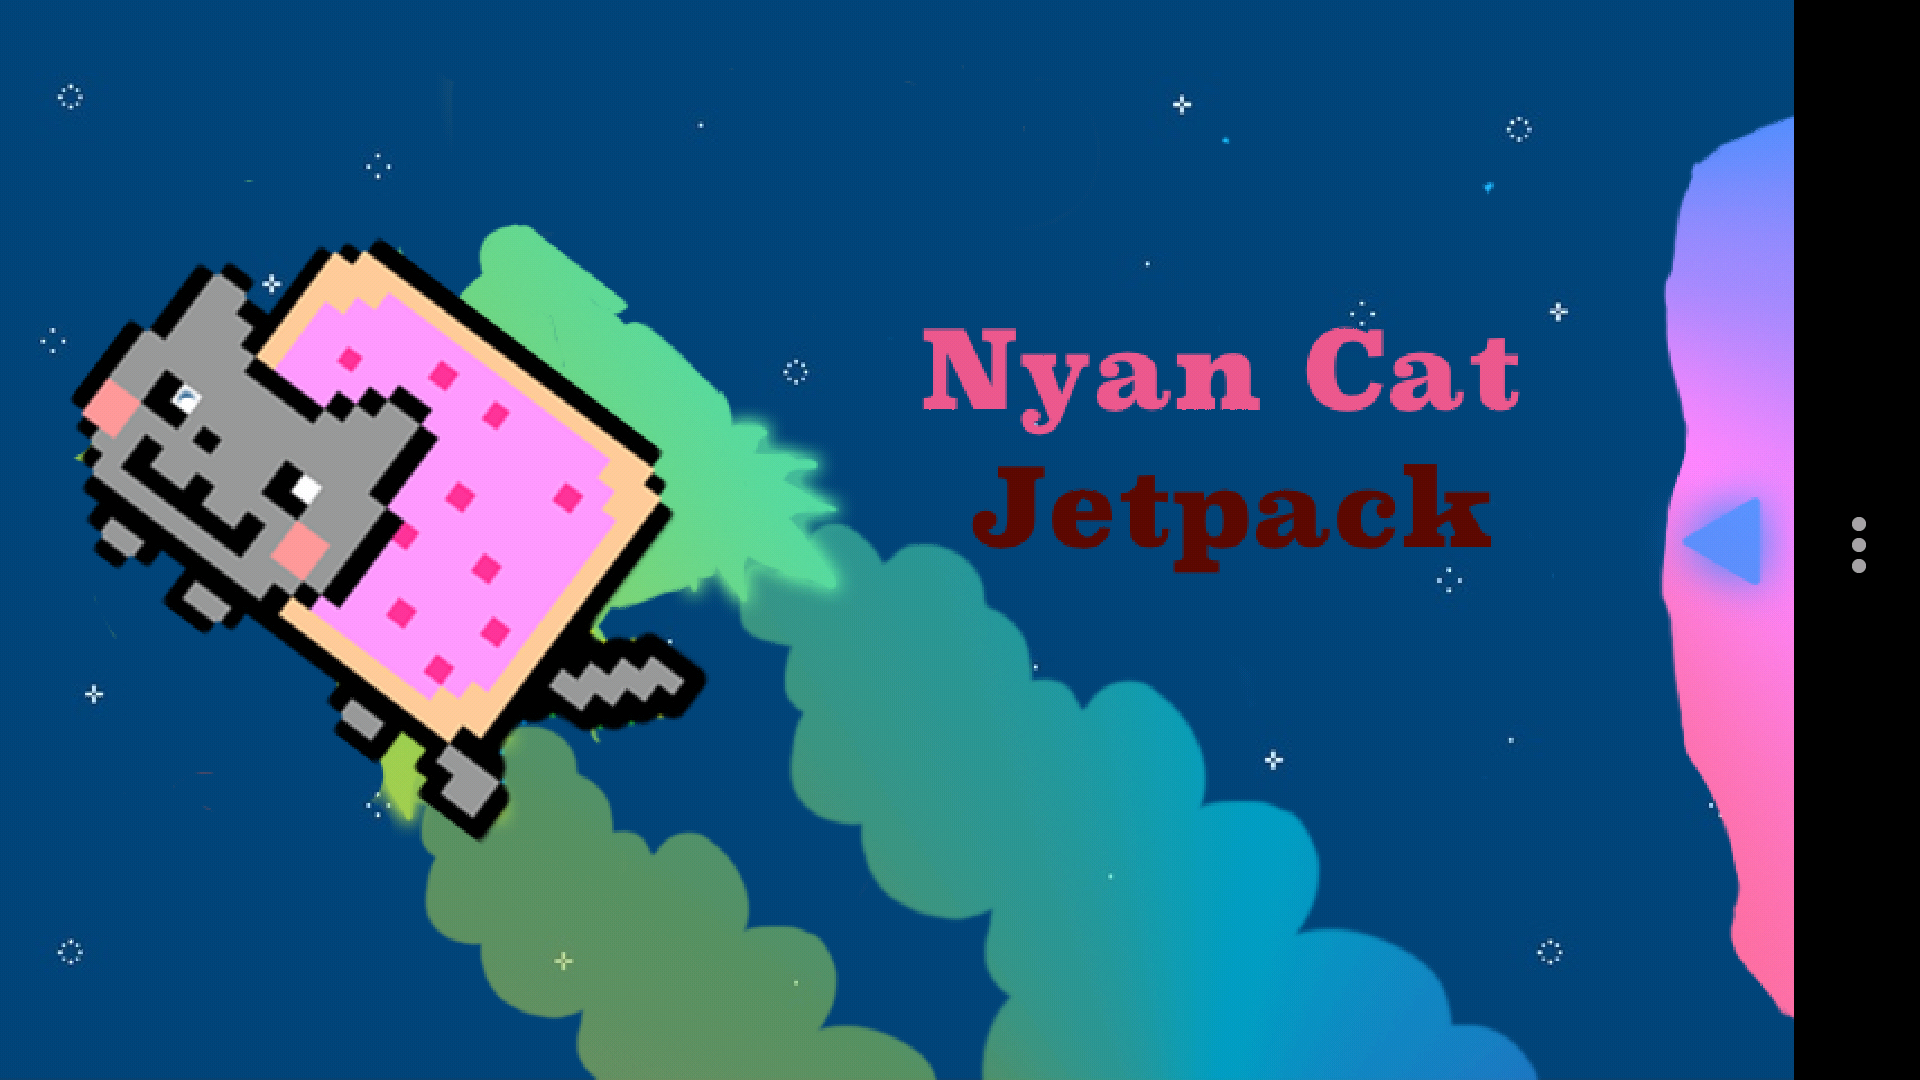 Jetpack Nyan Cat Amazonin Appstore For Android - nyan cat roblox piano